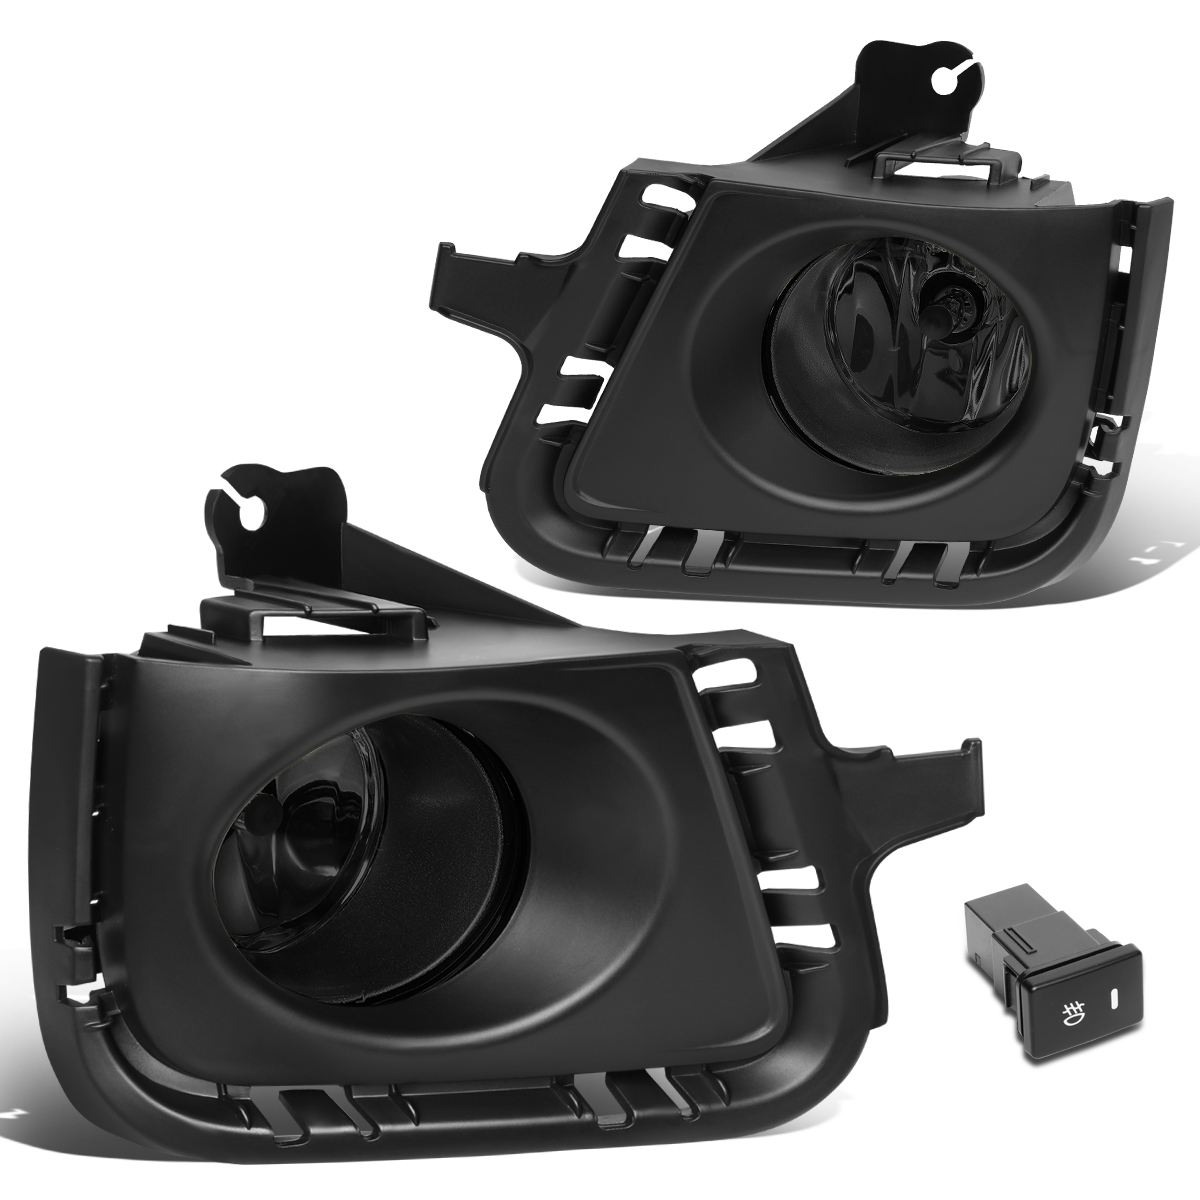 For 12-14 Toyota Prius C Pair Front Bumper Driving Fog Light/Lamp+Bezel+Switch Smoked Lens 13